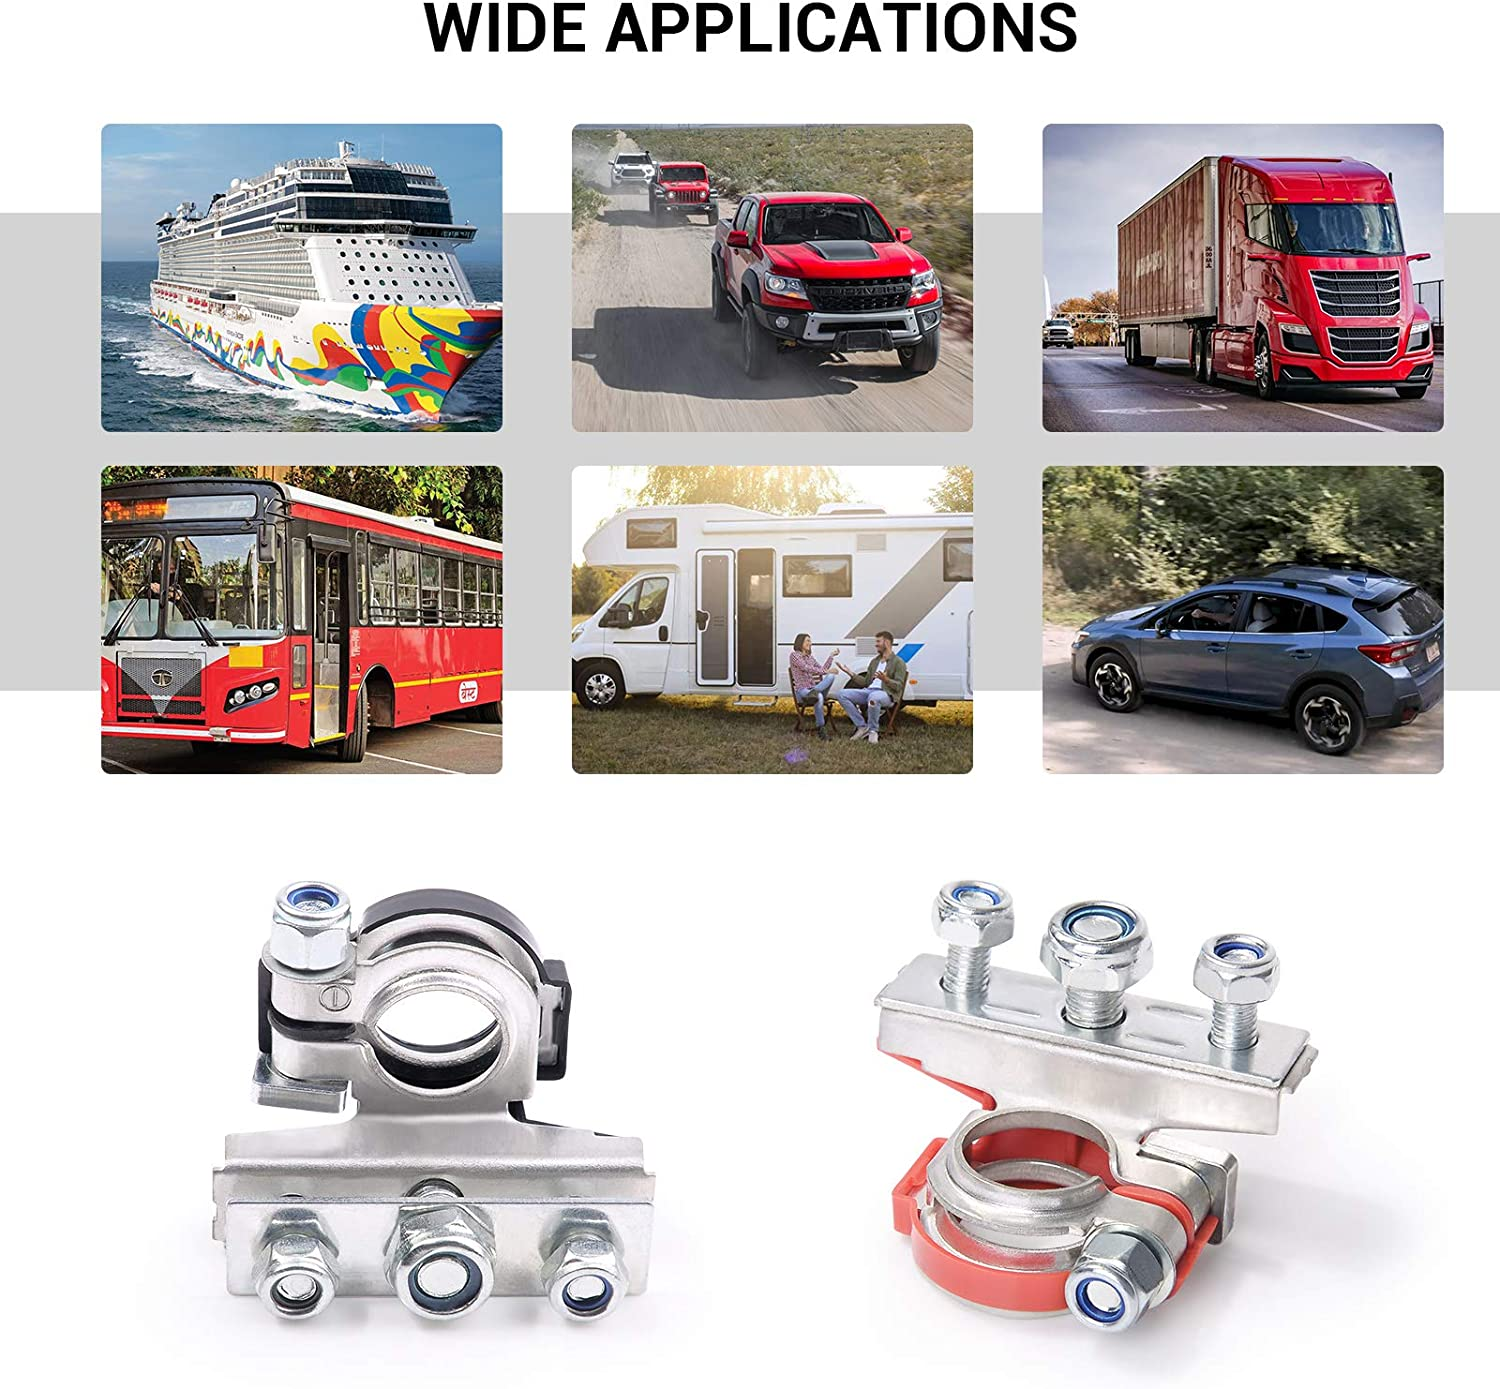 Black /& Red Negative and Positive Copper Plate Cable Clamp Quick Connector for Boat Caravan Van Motorhome Motorcycle MNJ MOTOR 3 Way Car Battery Terminal Connectors